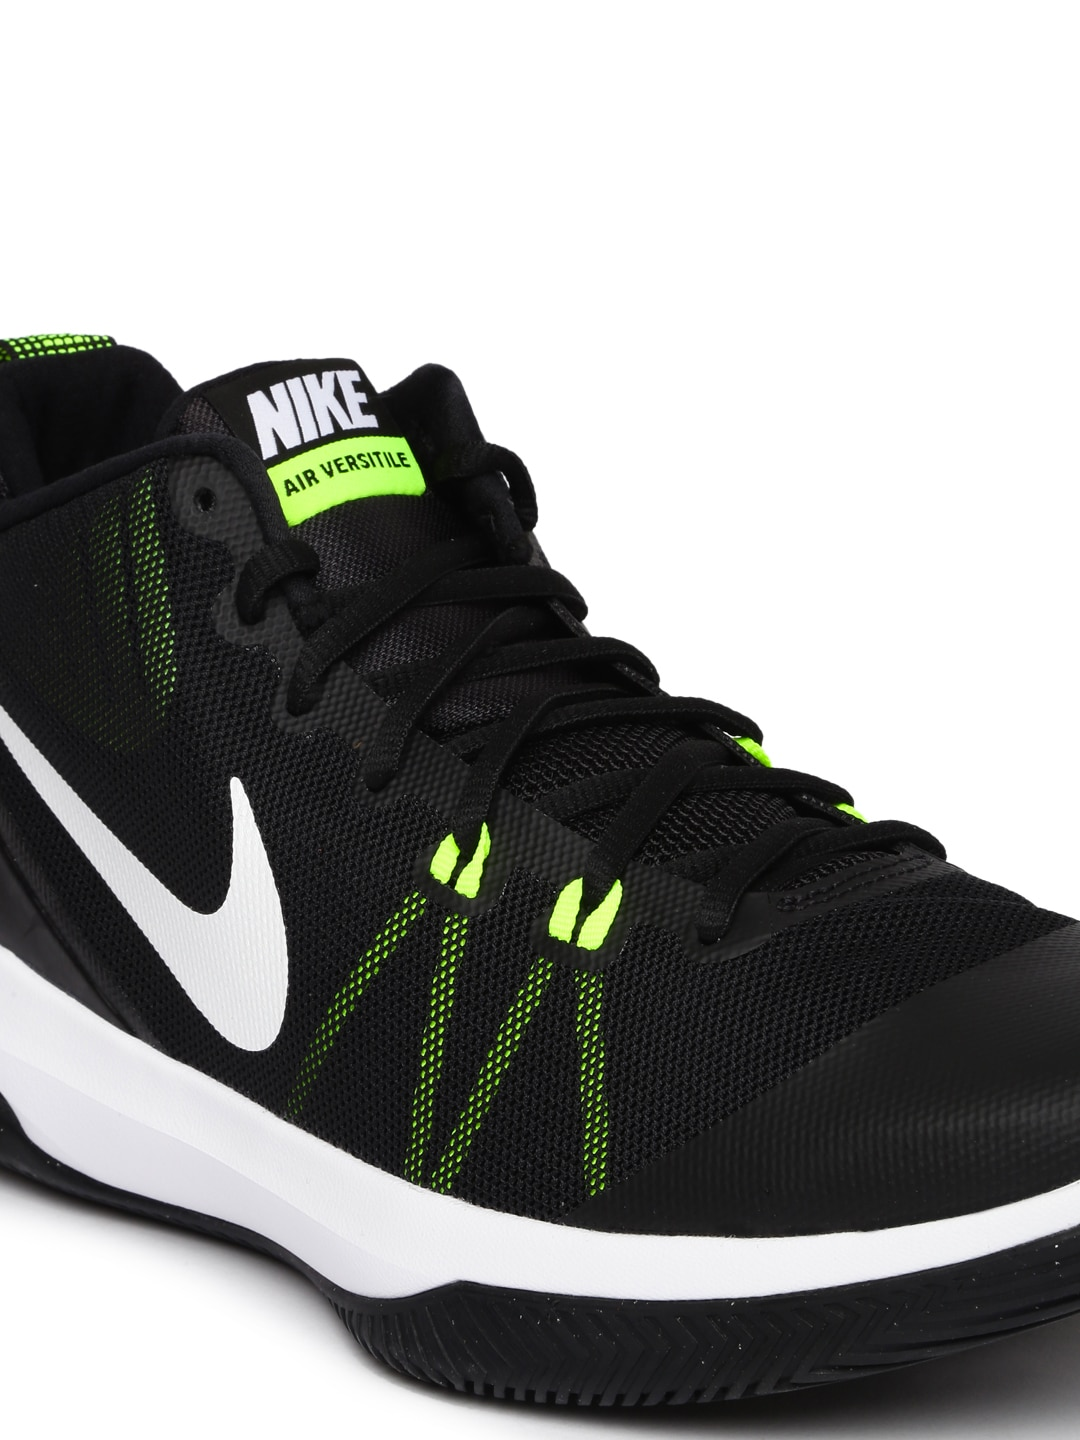 Best Basketball Shoes Online India